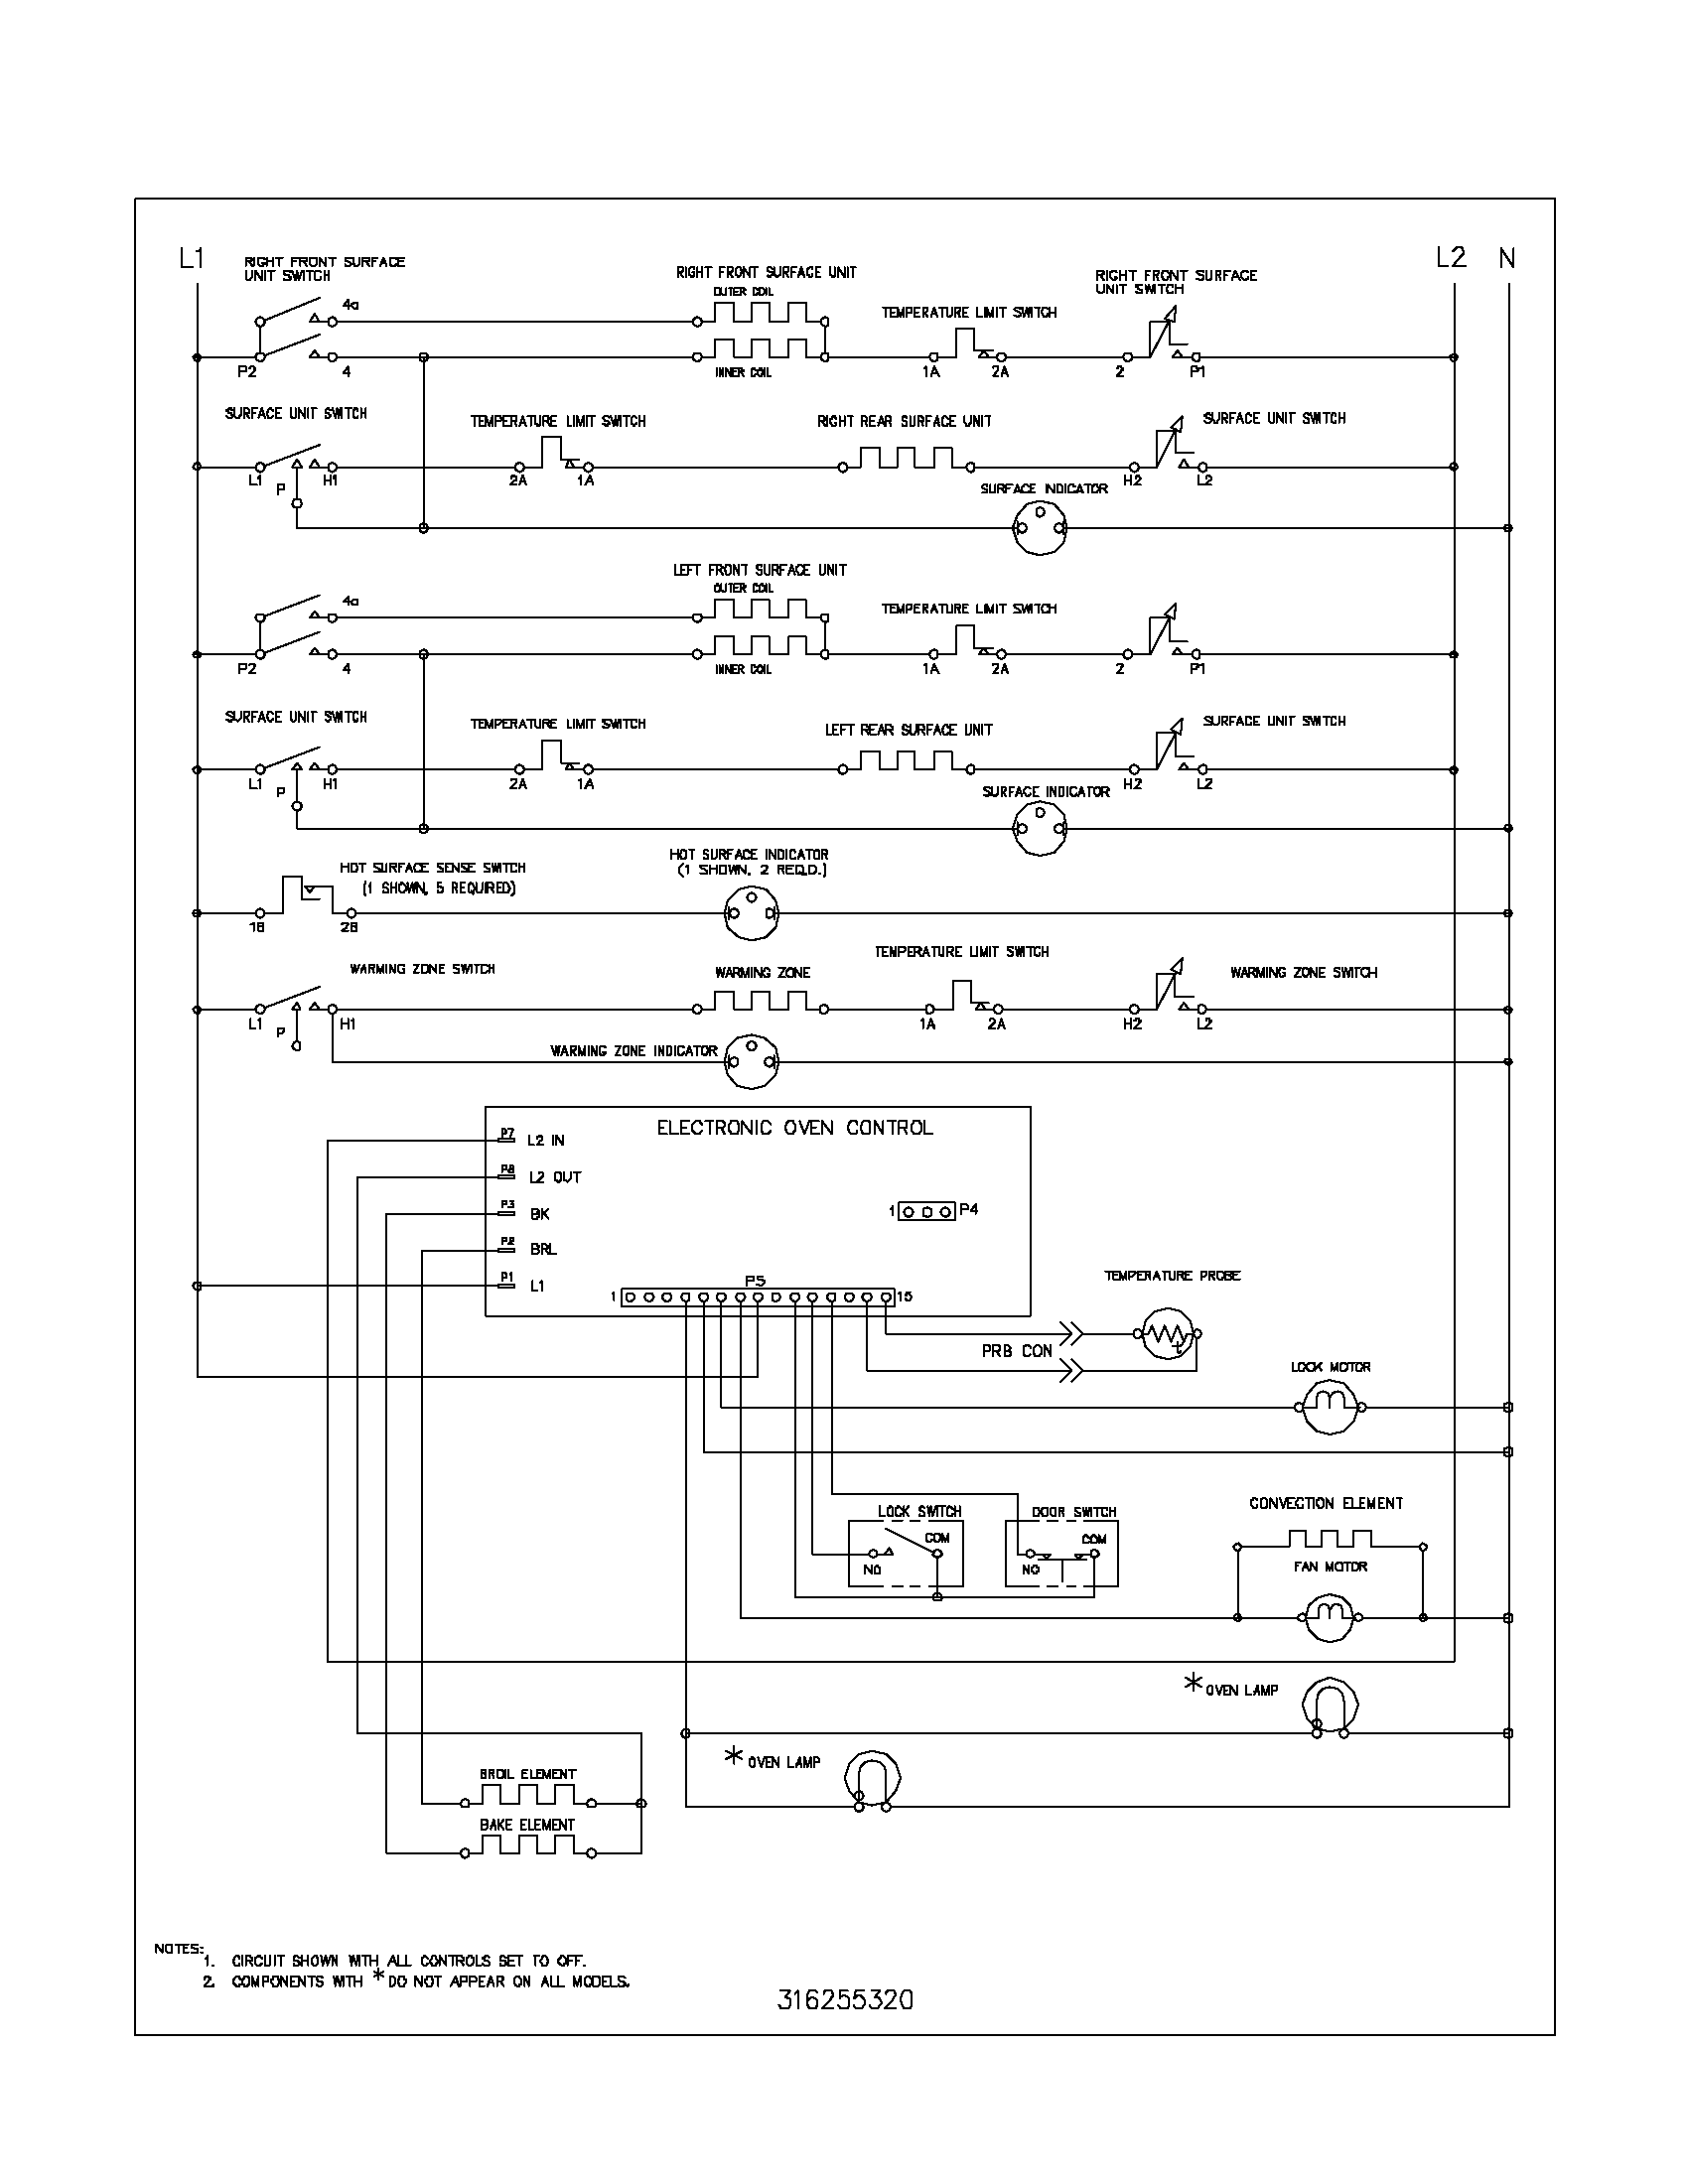 wiring schematic parts whirlpool fefl88acc electric range timer stove clocks and westinghouse oven element wiring diagram at gsmx.co